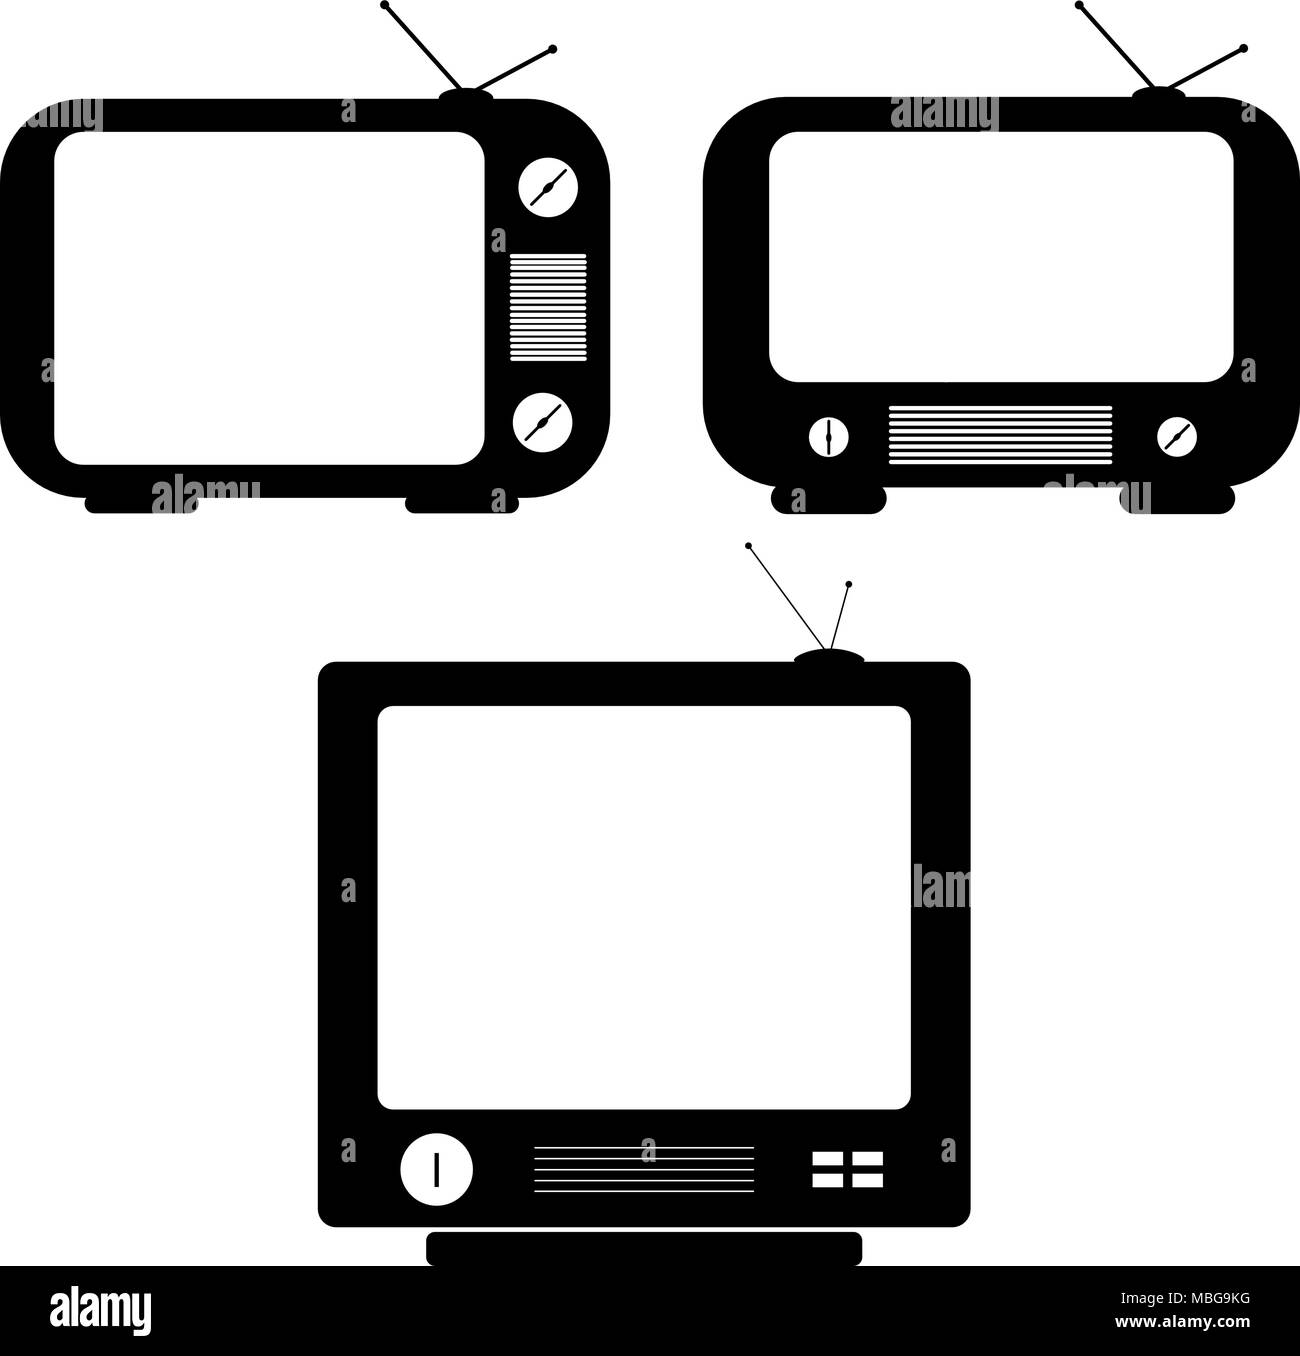 TV vector drawings. Flat style vector. Television icon, symbol isolated on white background, surface. - Stock Image